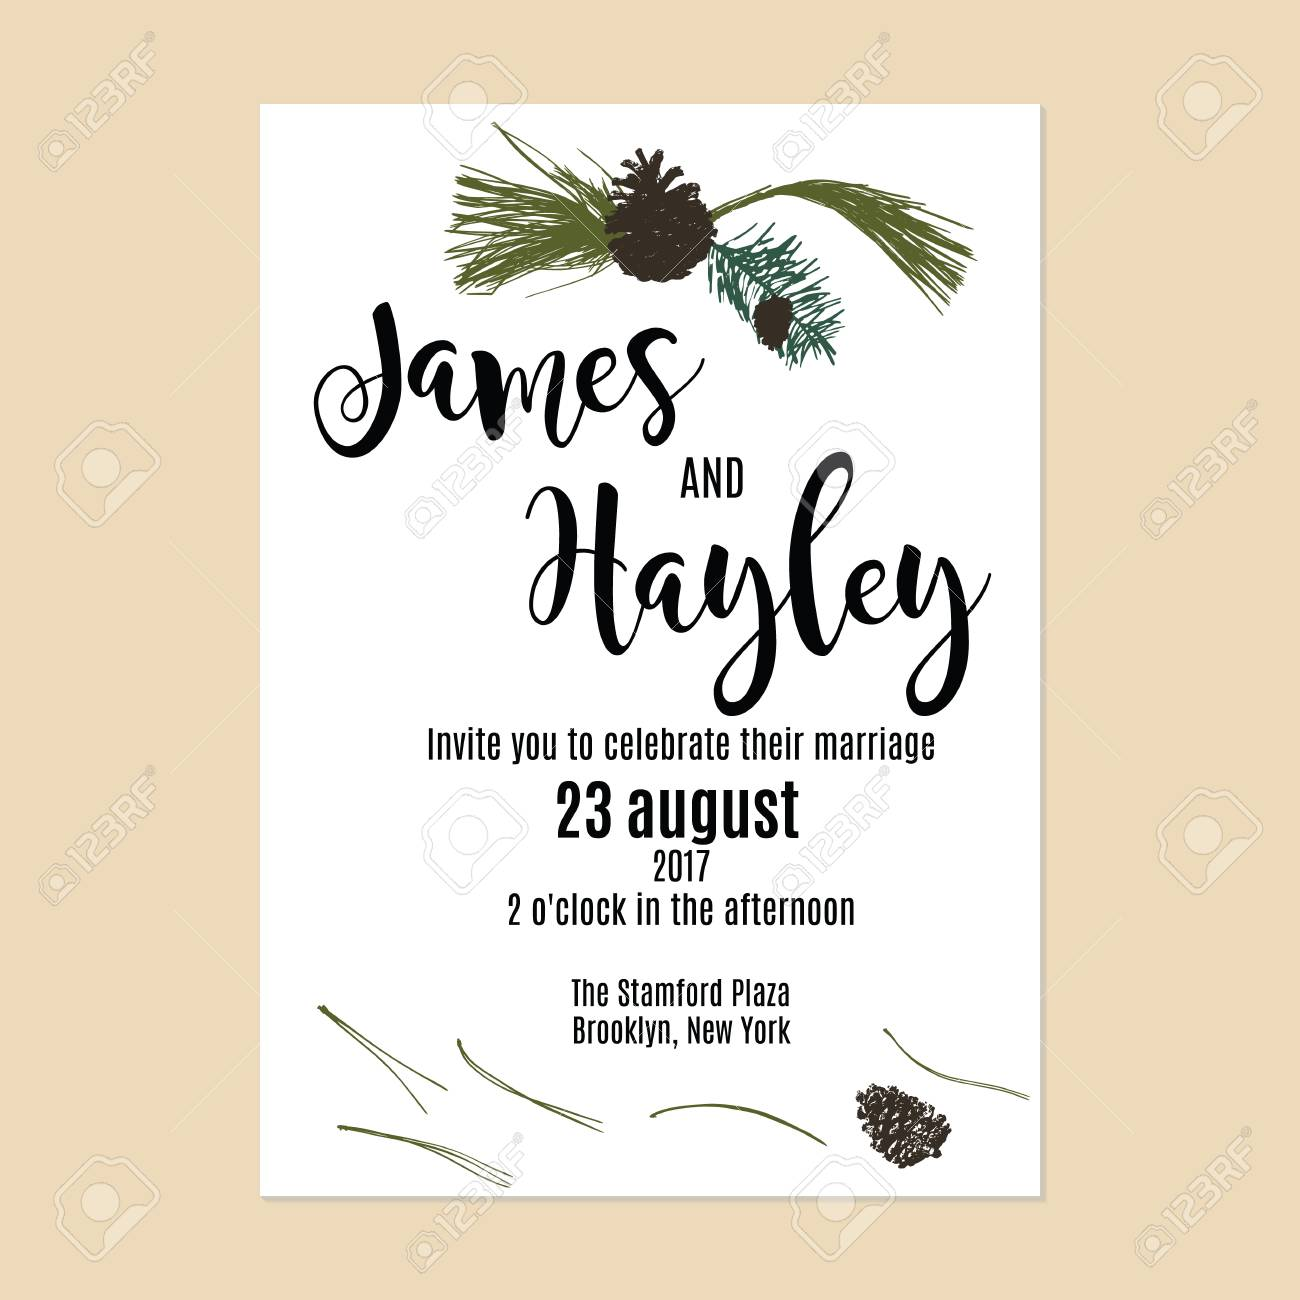 Minimalistic Botany Wedding Invitation Card Template Vector With ...